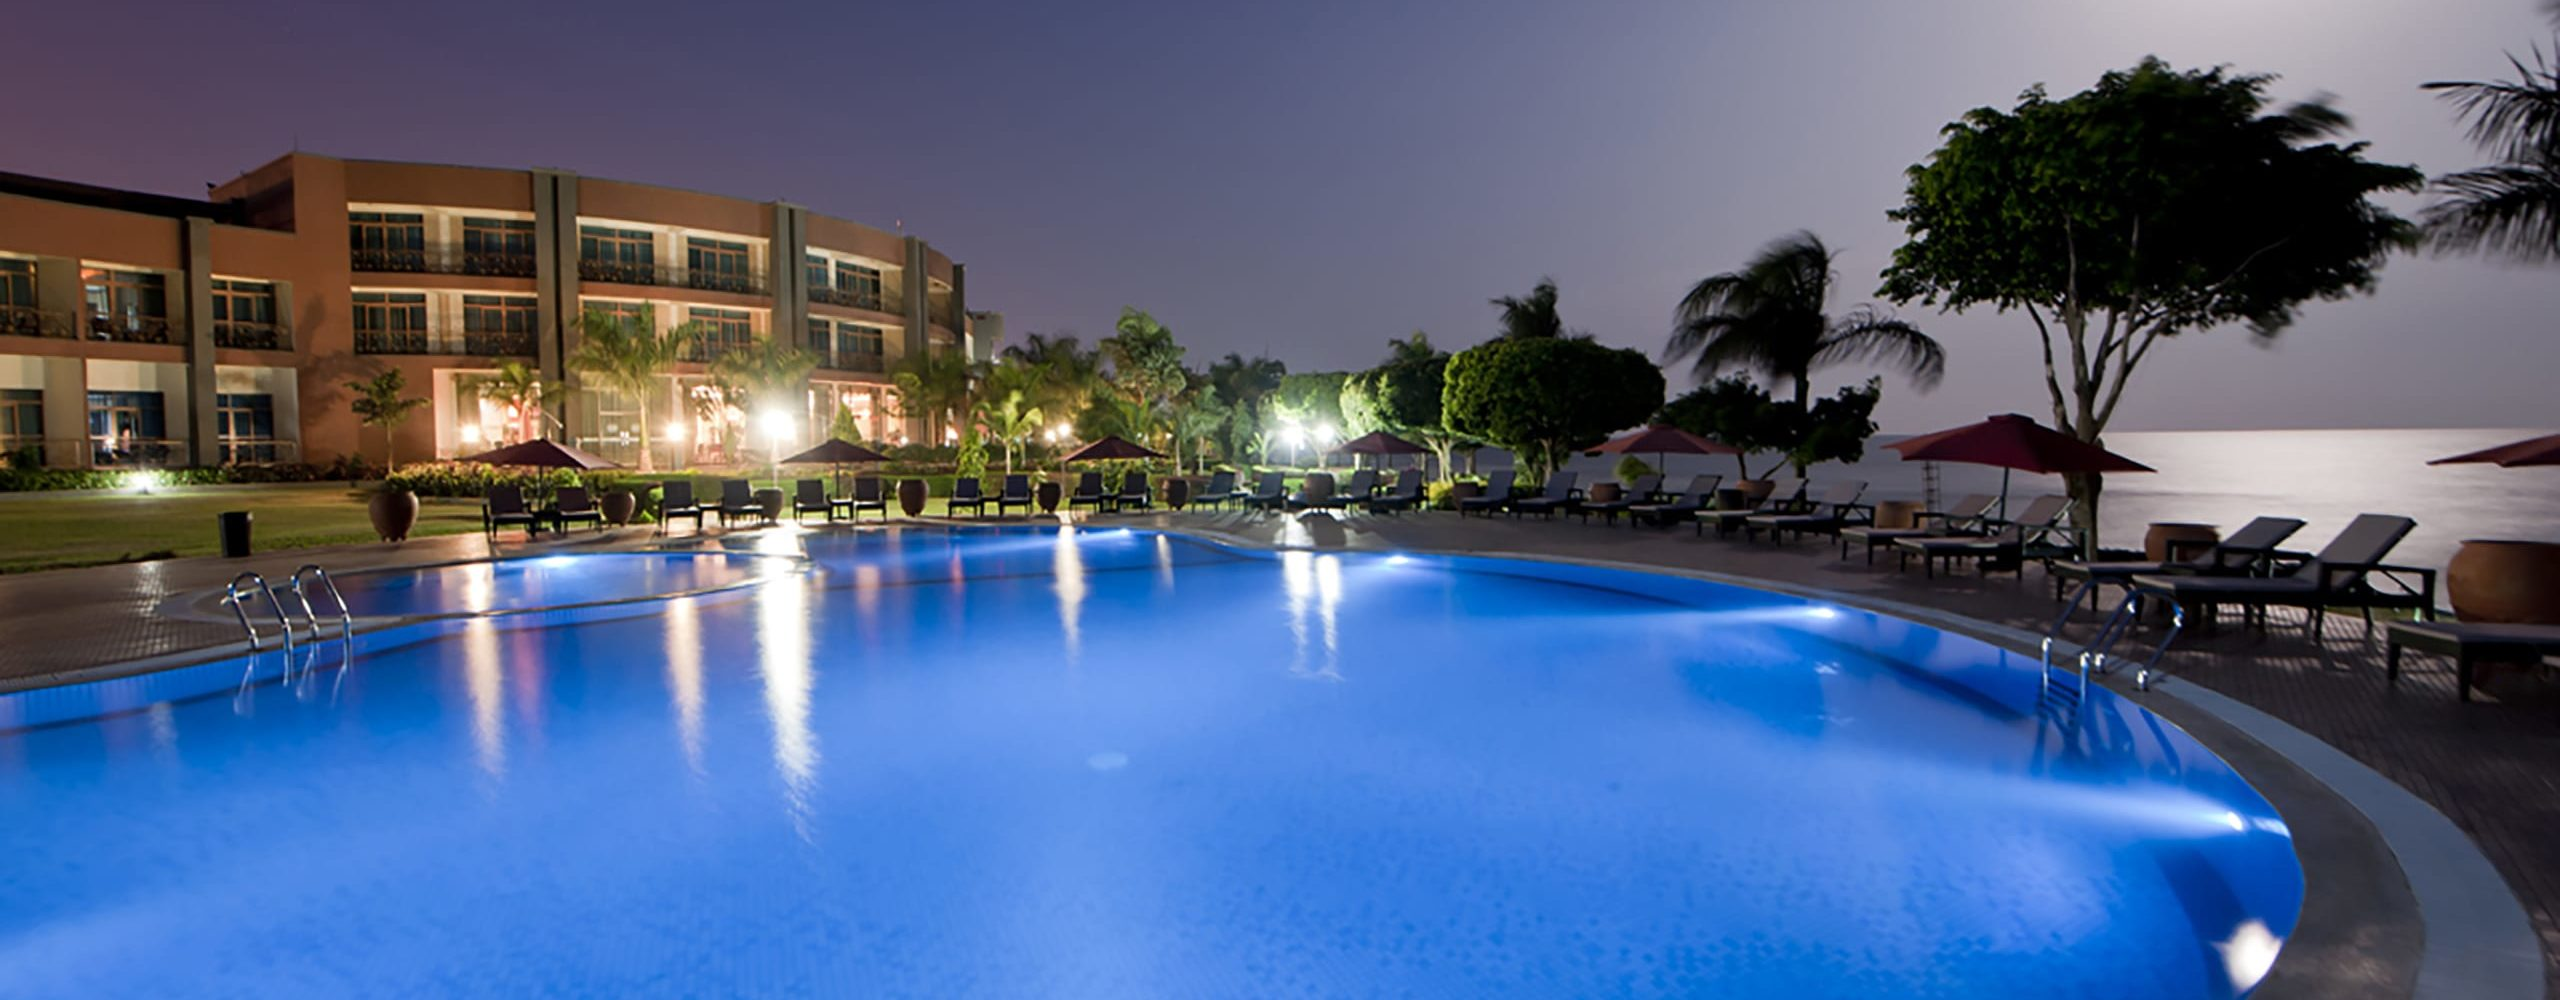 Marriott Protea Hotel Entebbe is ideally located for guests wanting to spend time at Lake Victoria. © Marriott